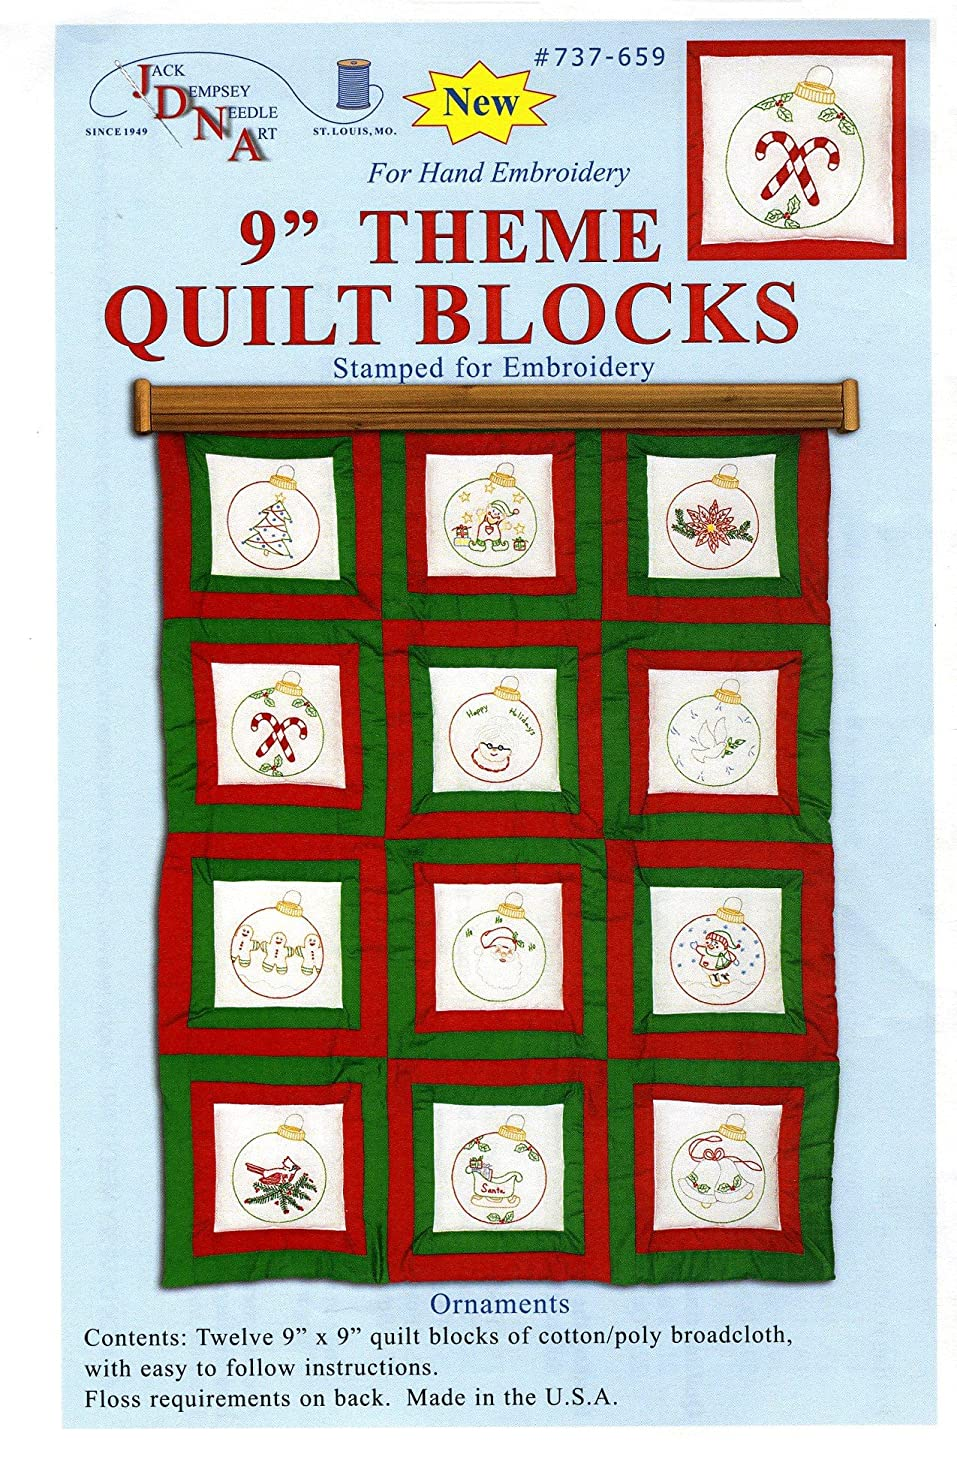 Jack Dempsey Themed Stamped White Quilt Blocks, 9-Inch by 9-Inch, Ornaments, 12-Pack